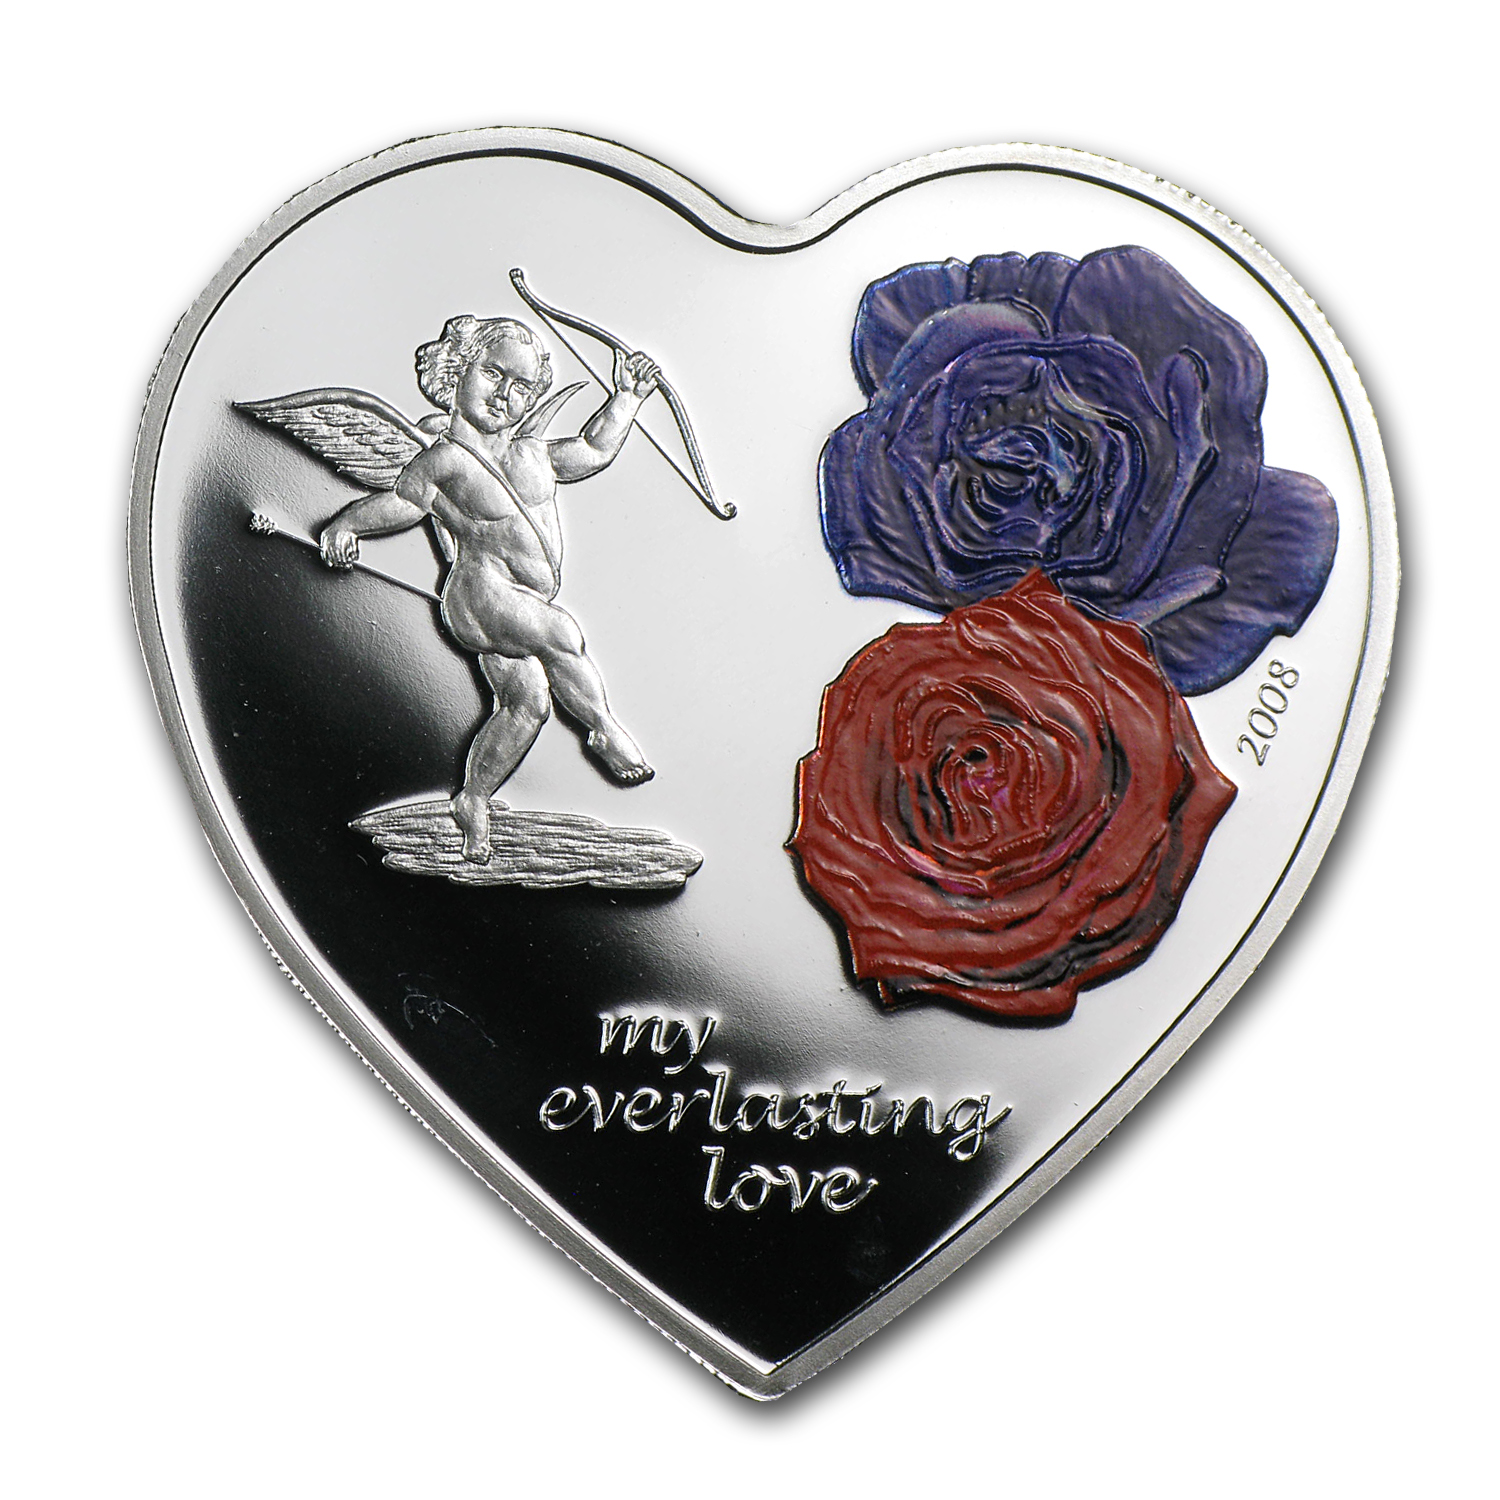 2008 Cook Islands Proof Silver $5 Everlasting Love Heart Coin